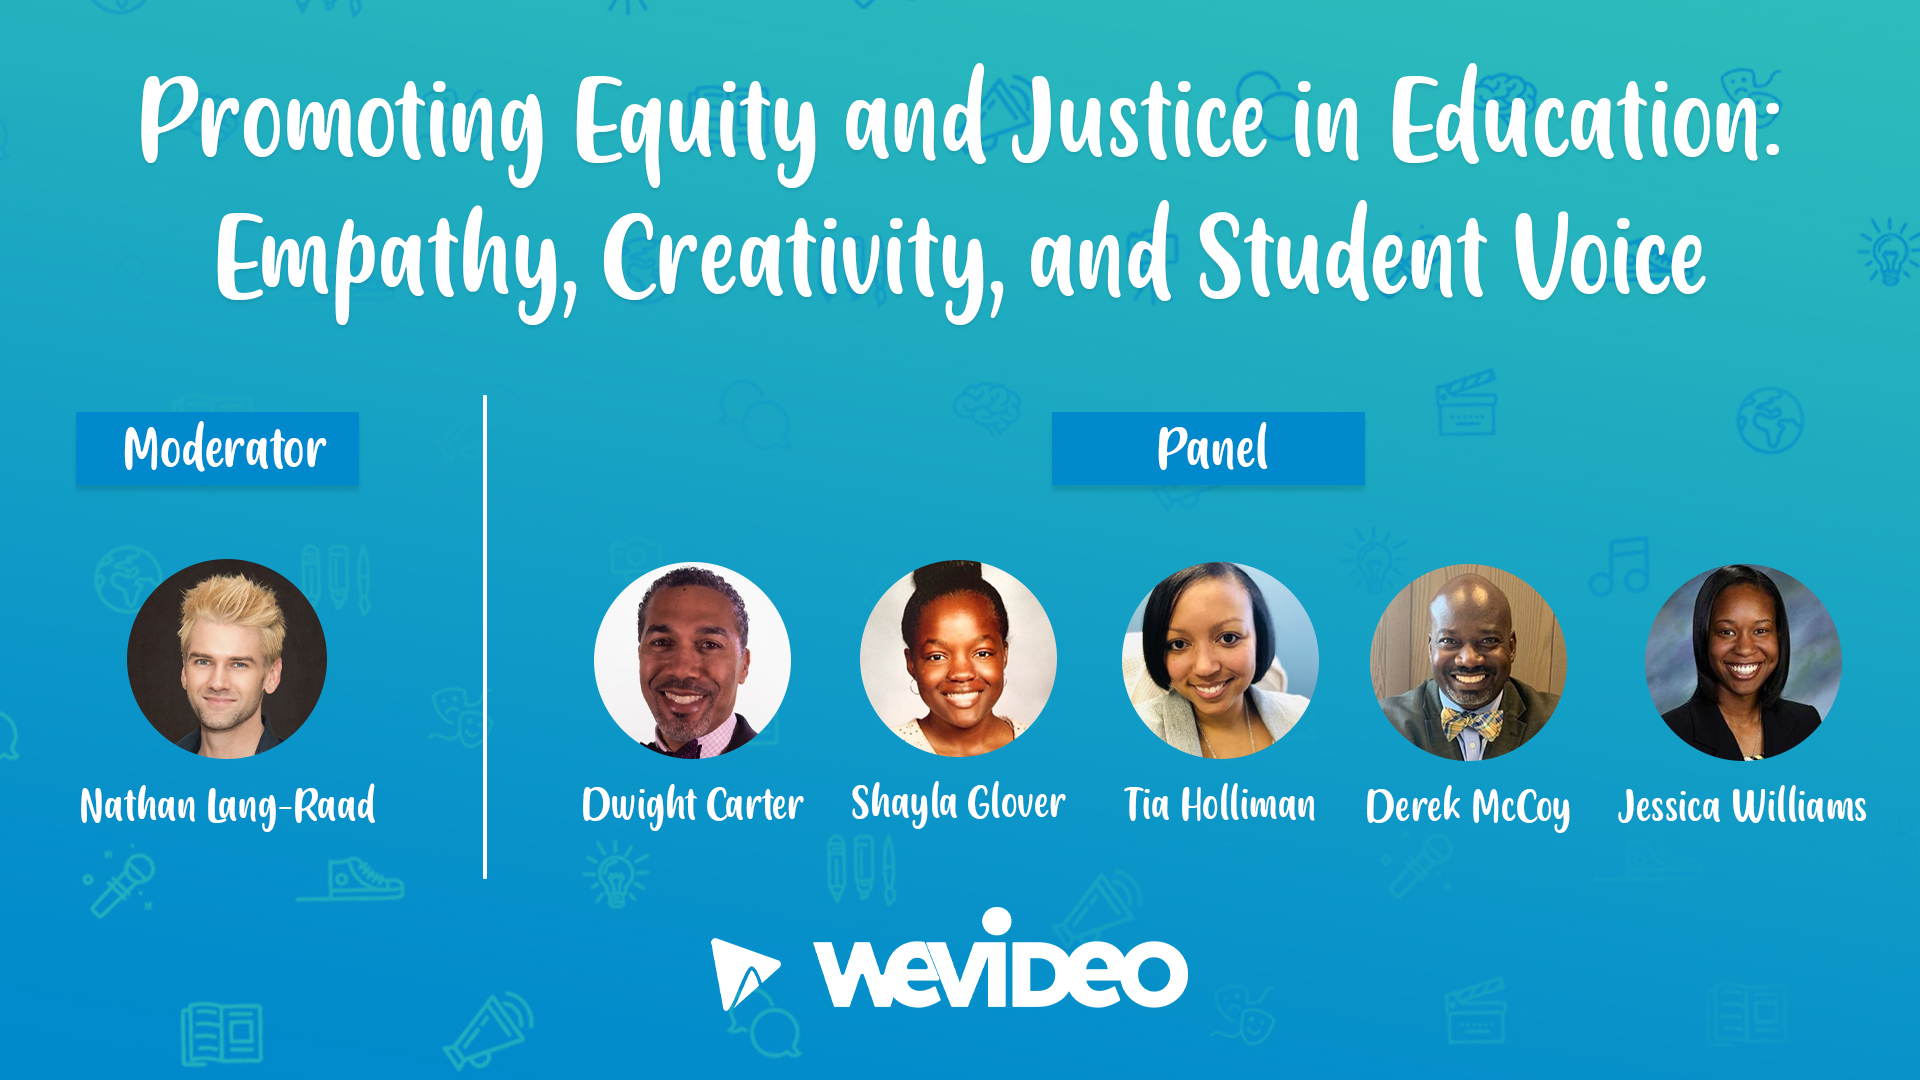 Promoting Equity and Justice_youtube